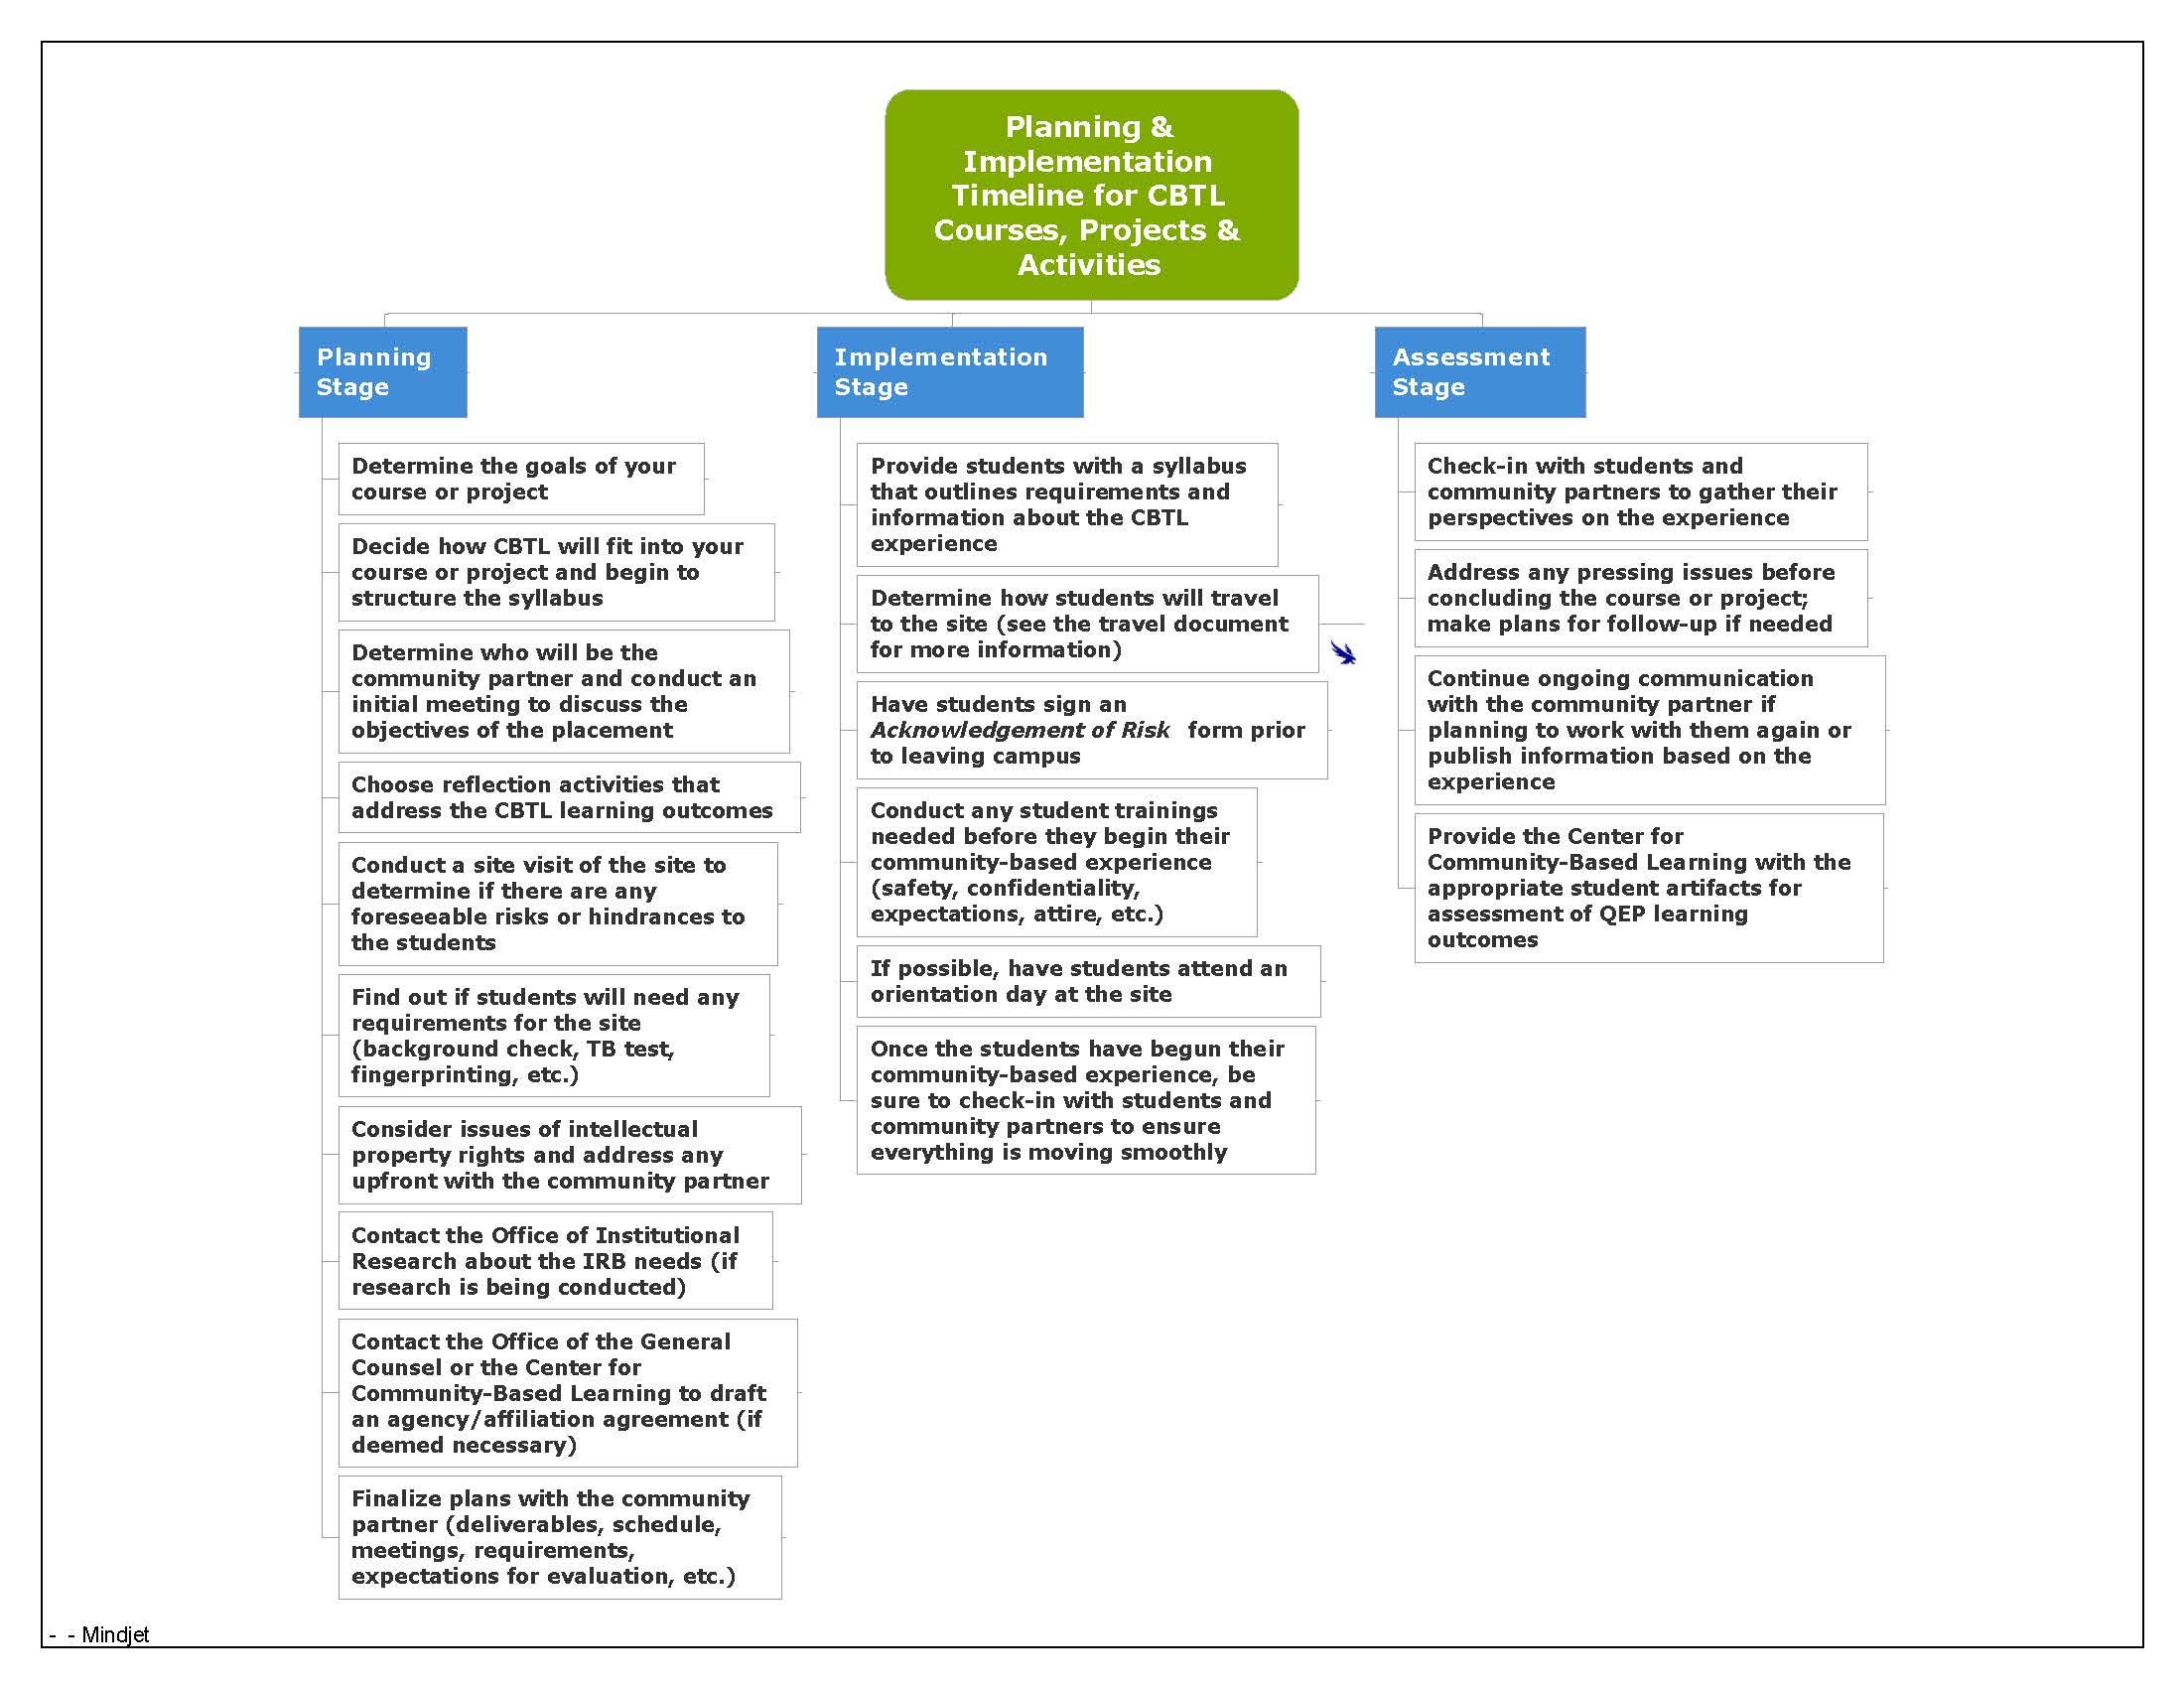 Planning and Implementation Timeline(1)